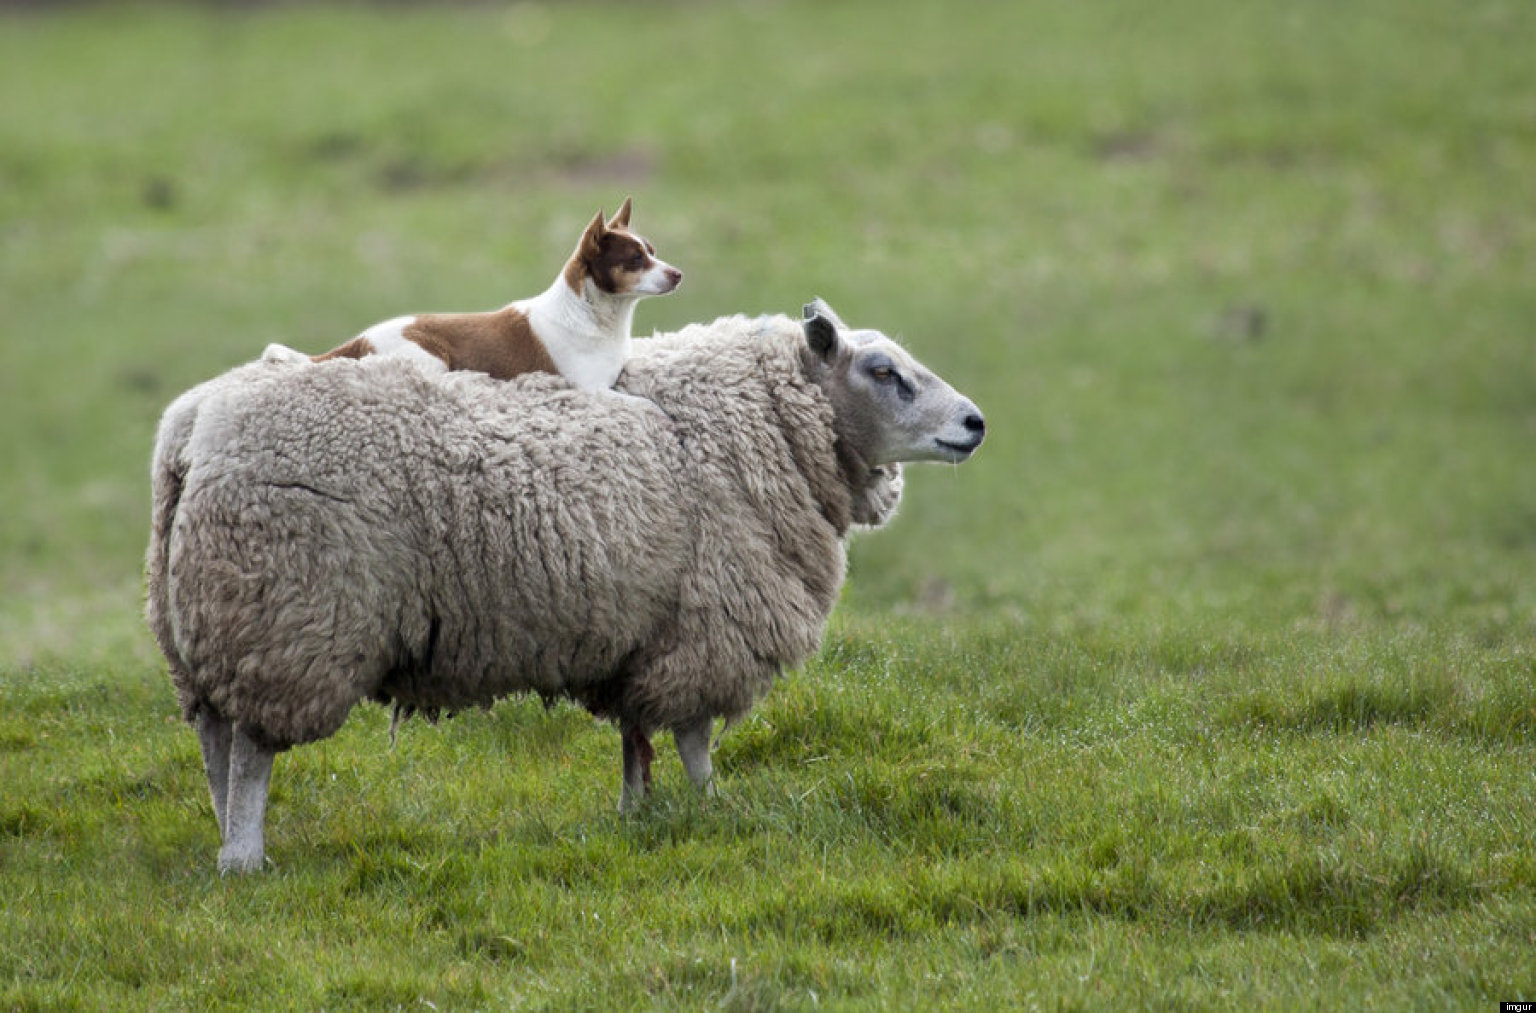 Dog Rides Sheep In The Best Photo You Might See All Day